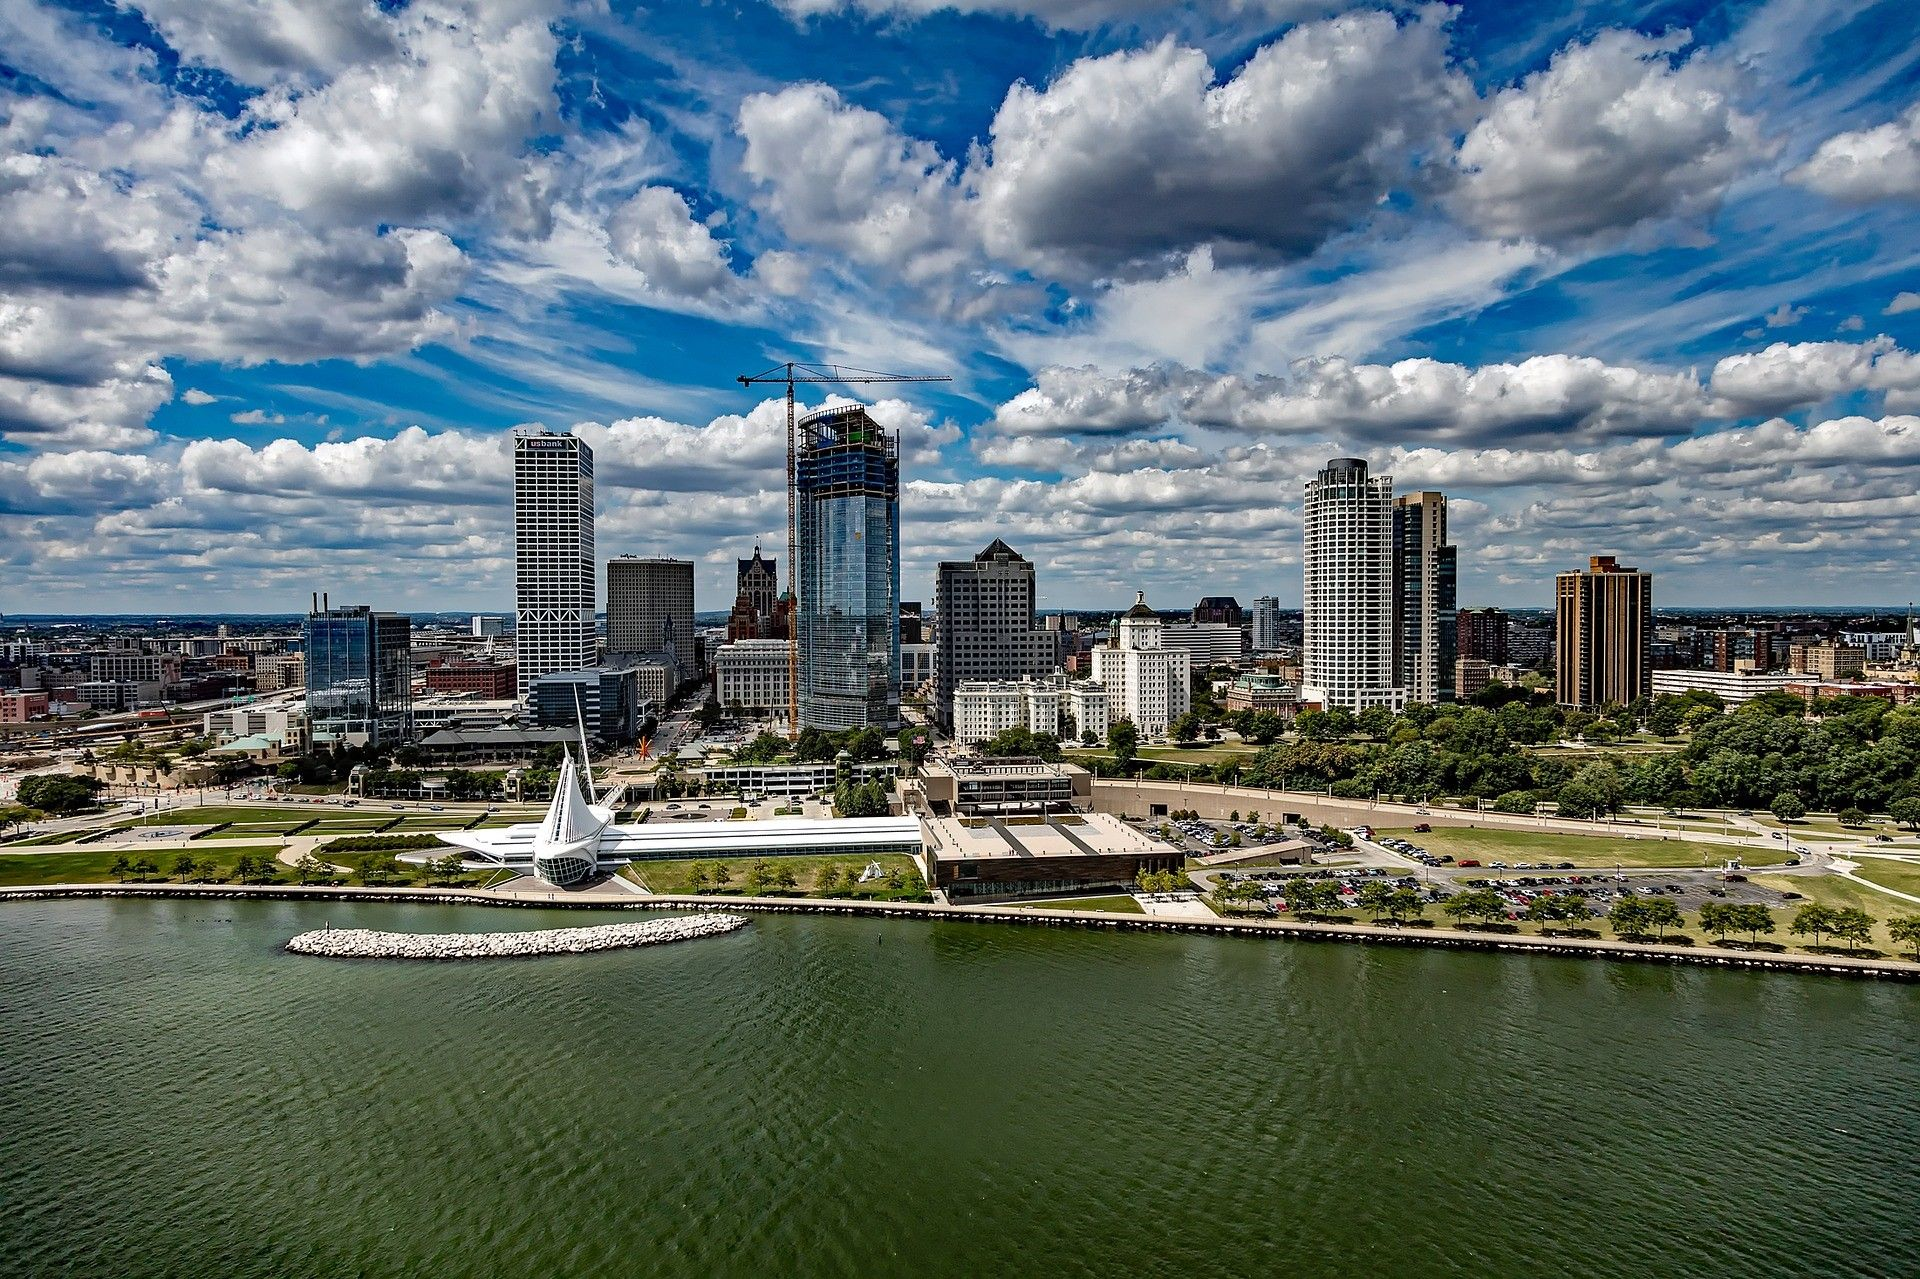 At Milwaukee S Scenic Lake Park You Can Visit North Point Lighthouse And Enjoy A Variety Of Maritime Activities An Road Trip Fun Milwaukee Cities In Wisconsin